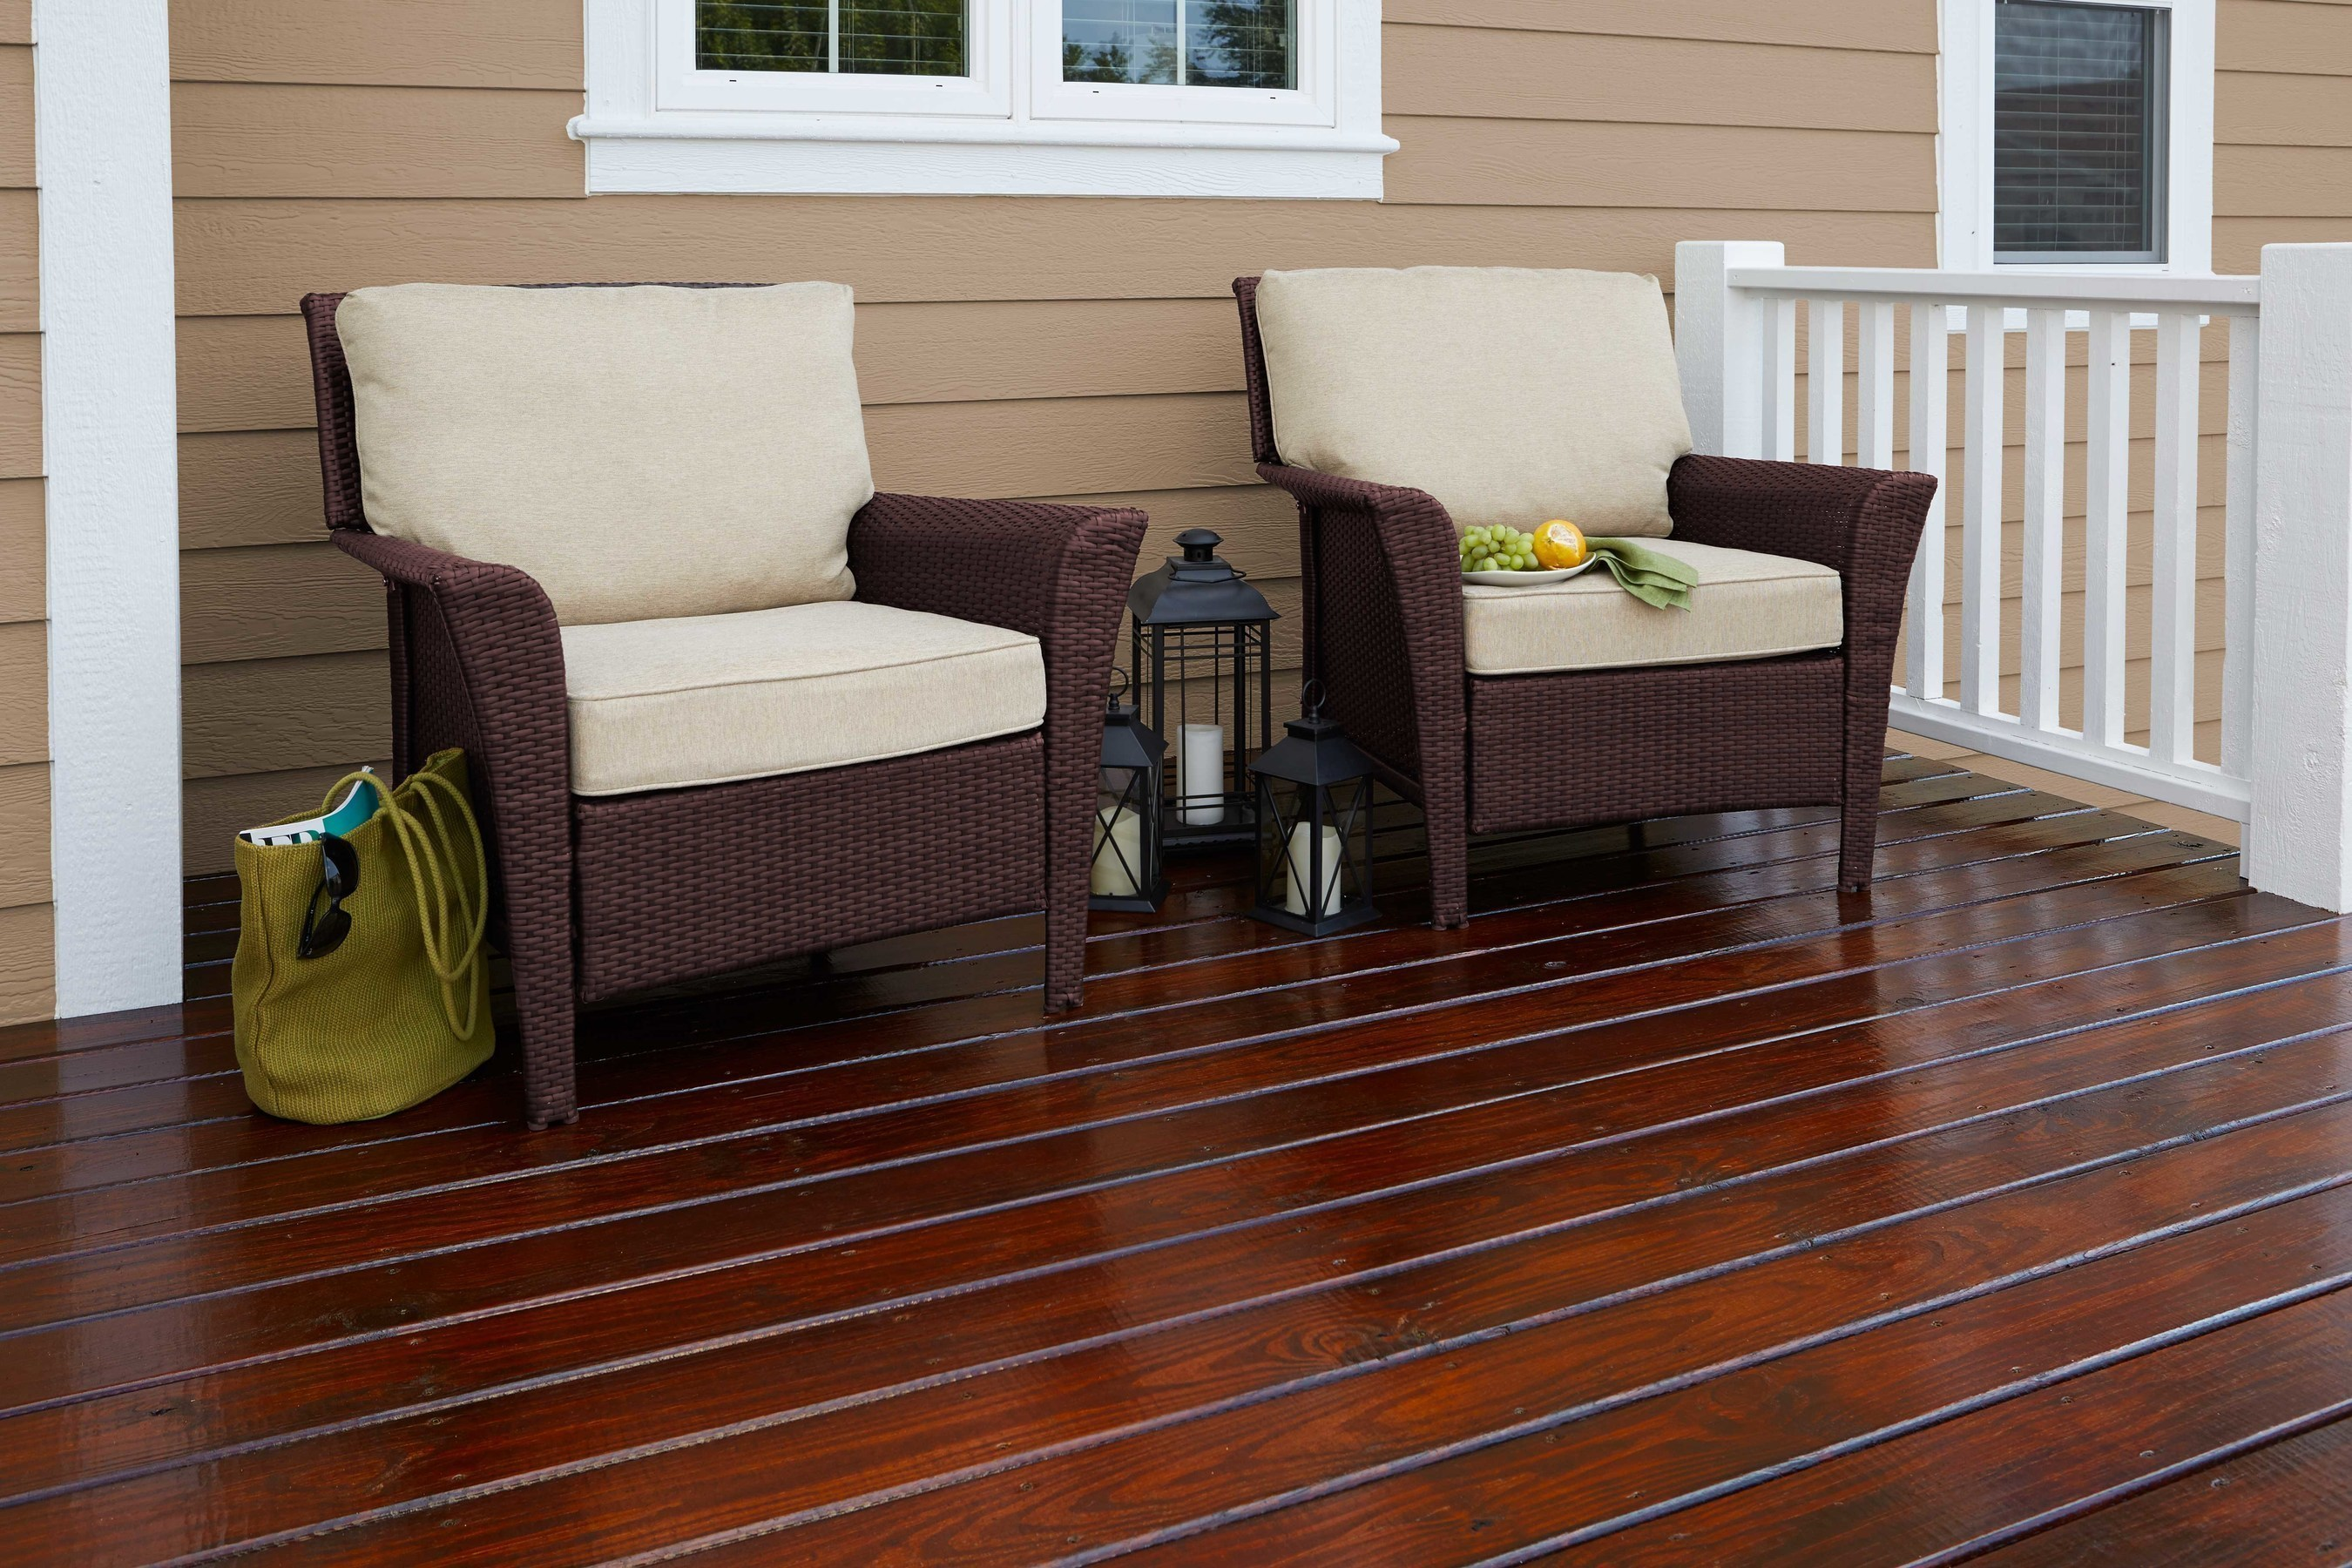 Cabot Gold Stain Provides A Luxurious Finish That Blurs The Lines Between  Indoor And Outdoor Living